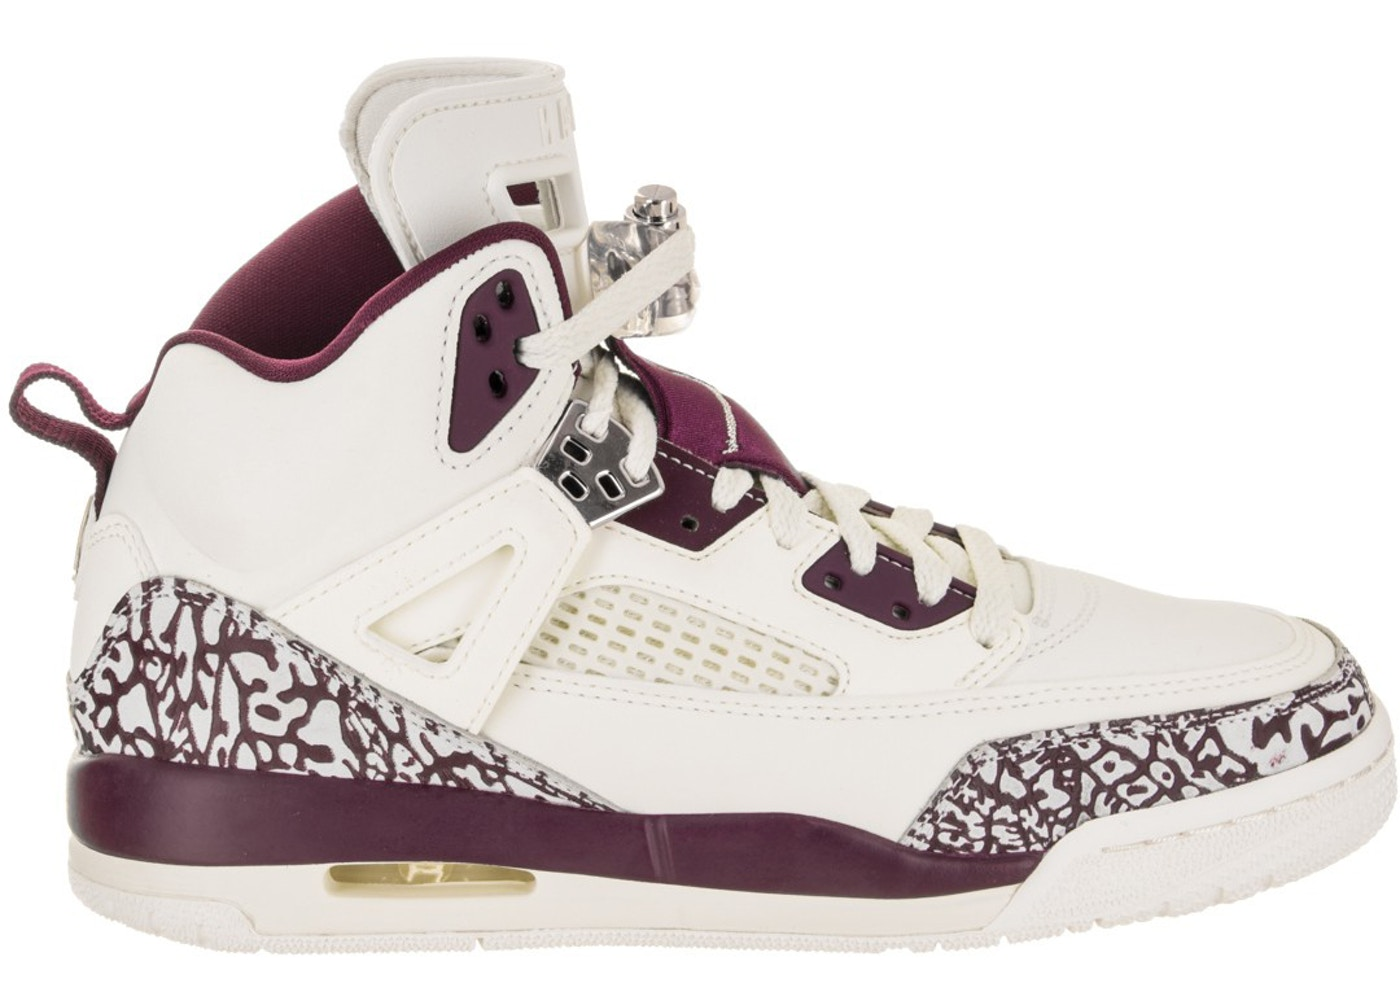 check out 9b837 b6c78 Jordan Spizike Bordeaux (GS) - 535712-132